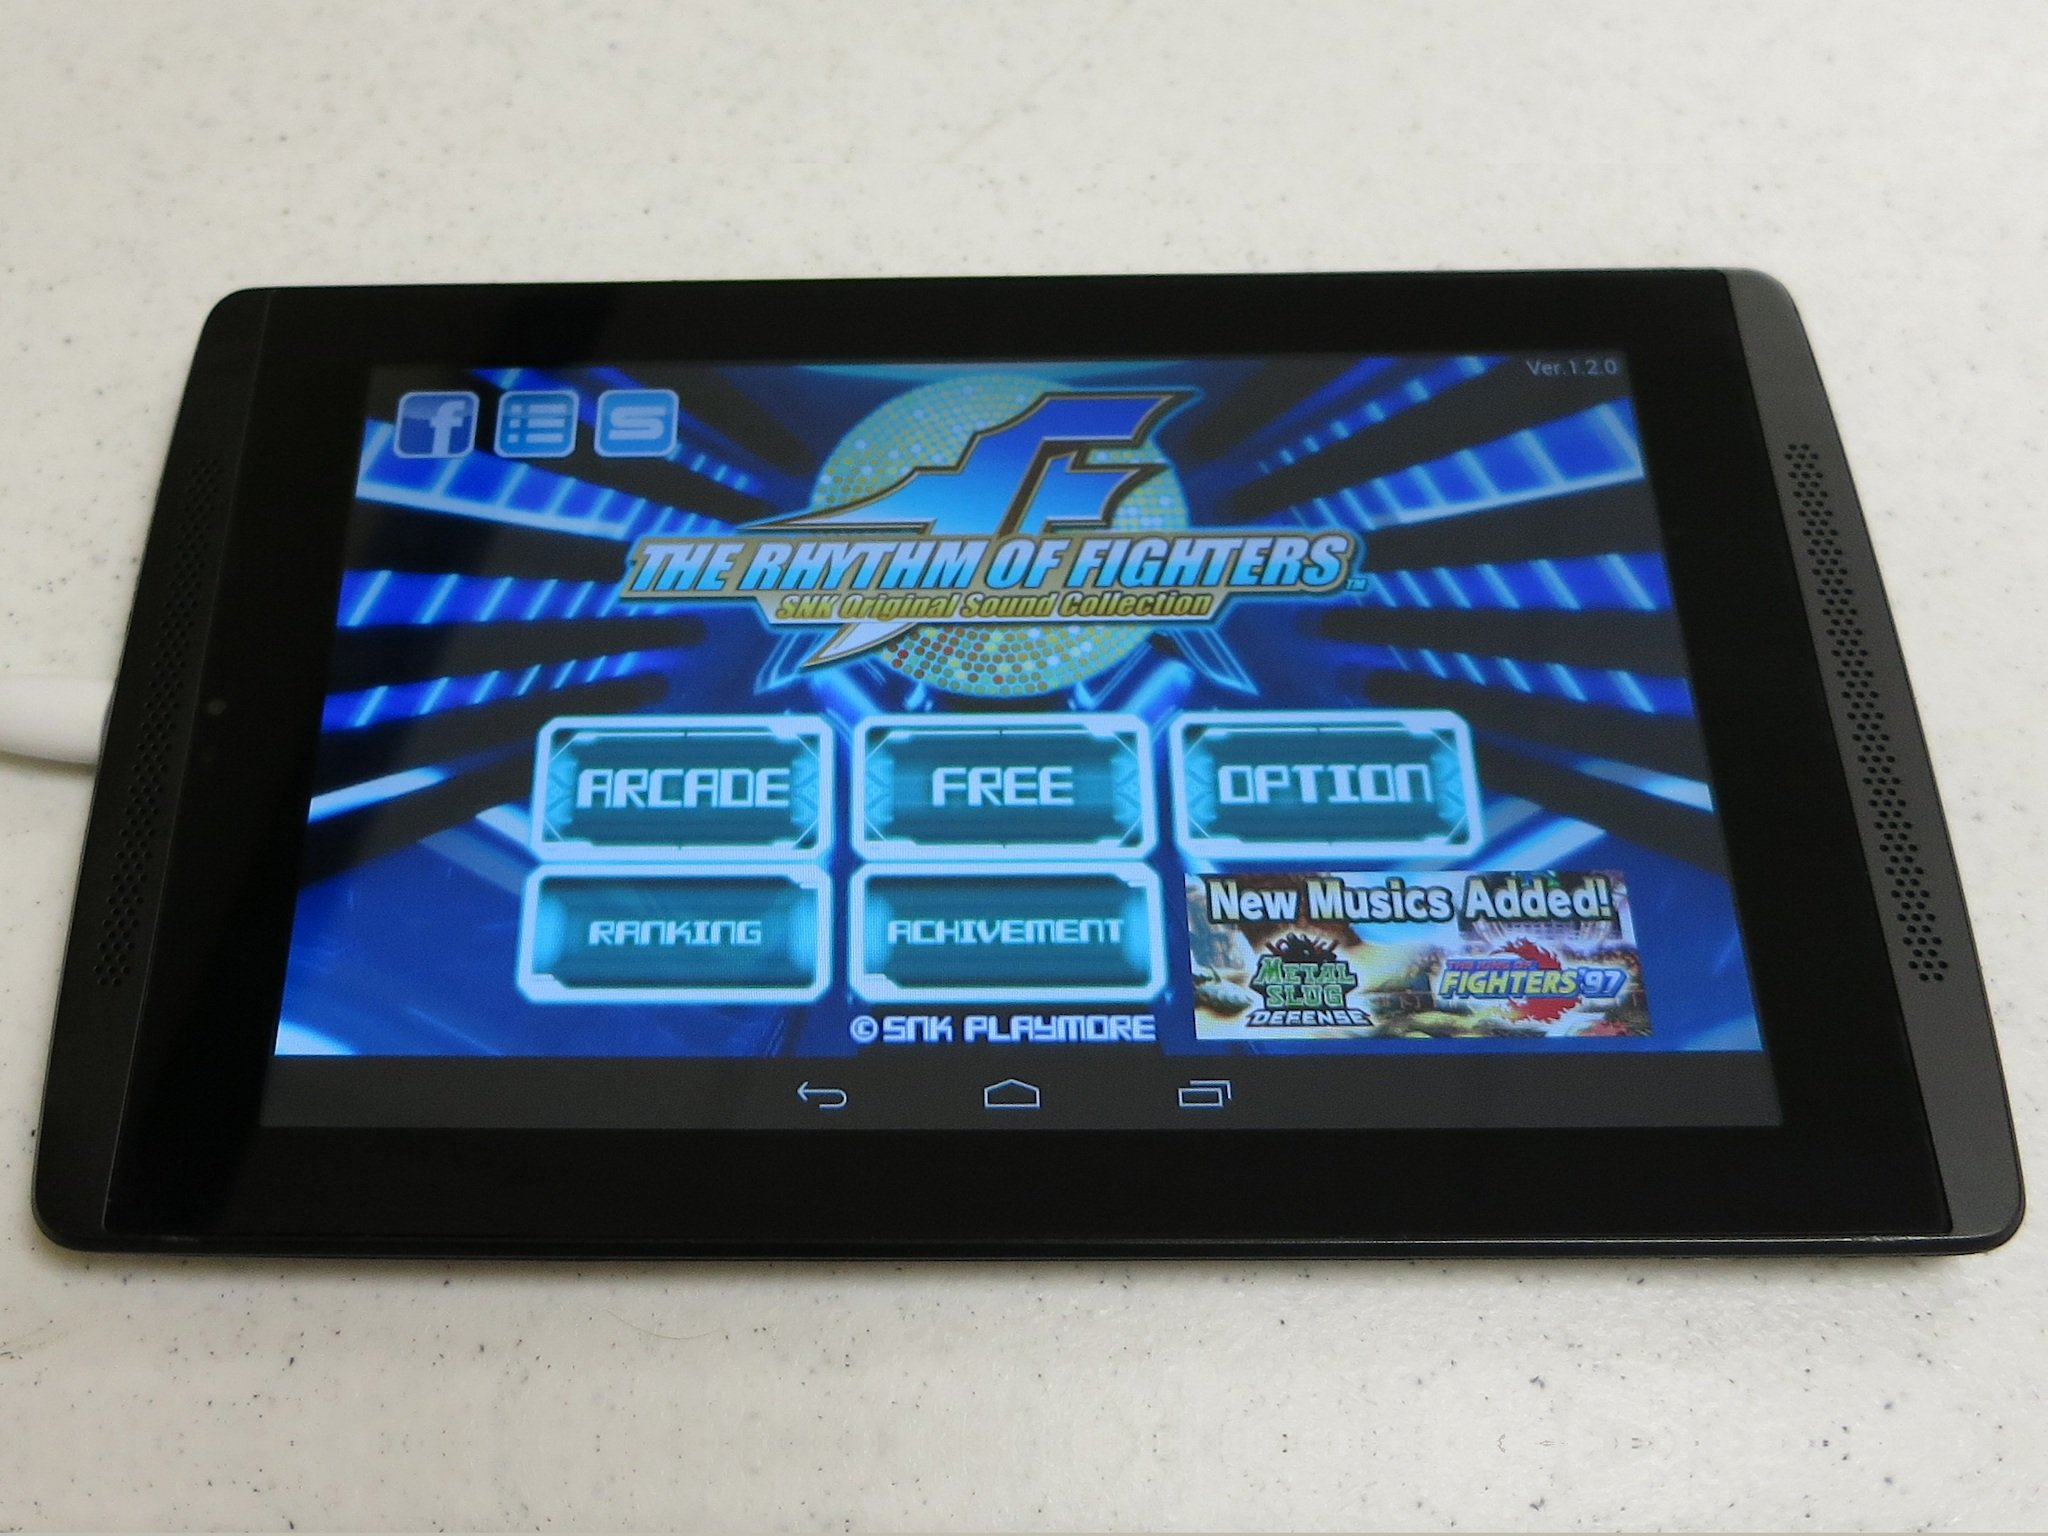 The Rhythm Of Fighters Review Android Central